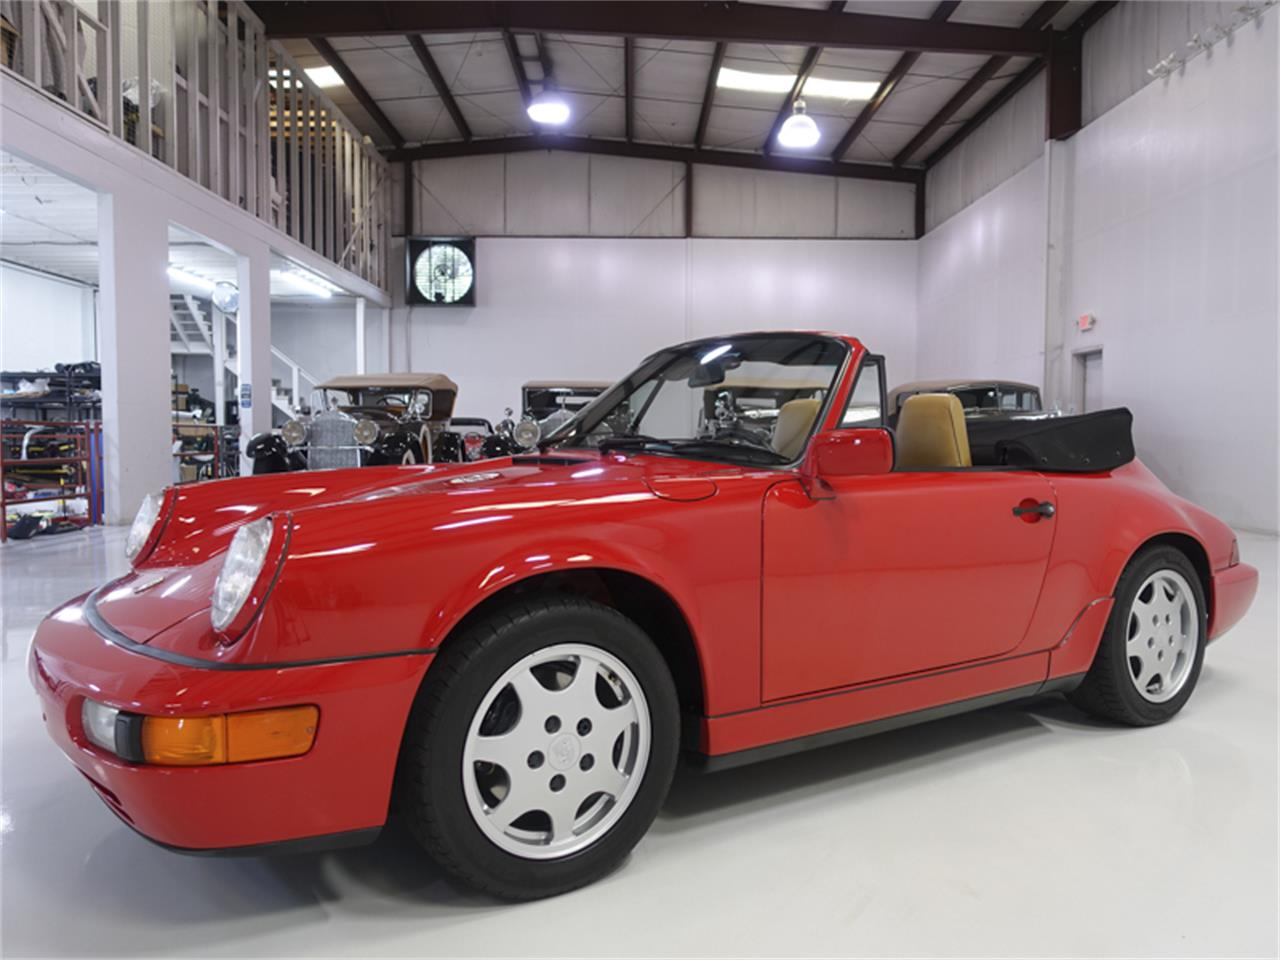 Large Picture of '90 Porsche 964 Carrera 2 located in Missouri - $59,900.00 Offered by Daniel Schmitt & Co. - PVNV